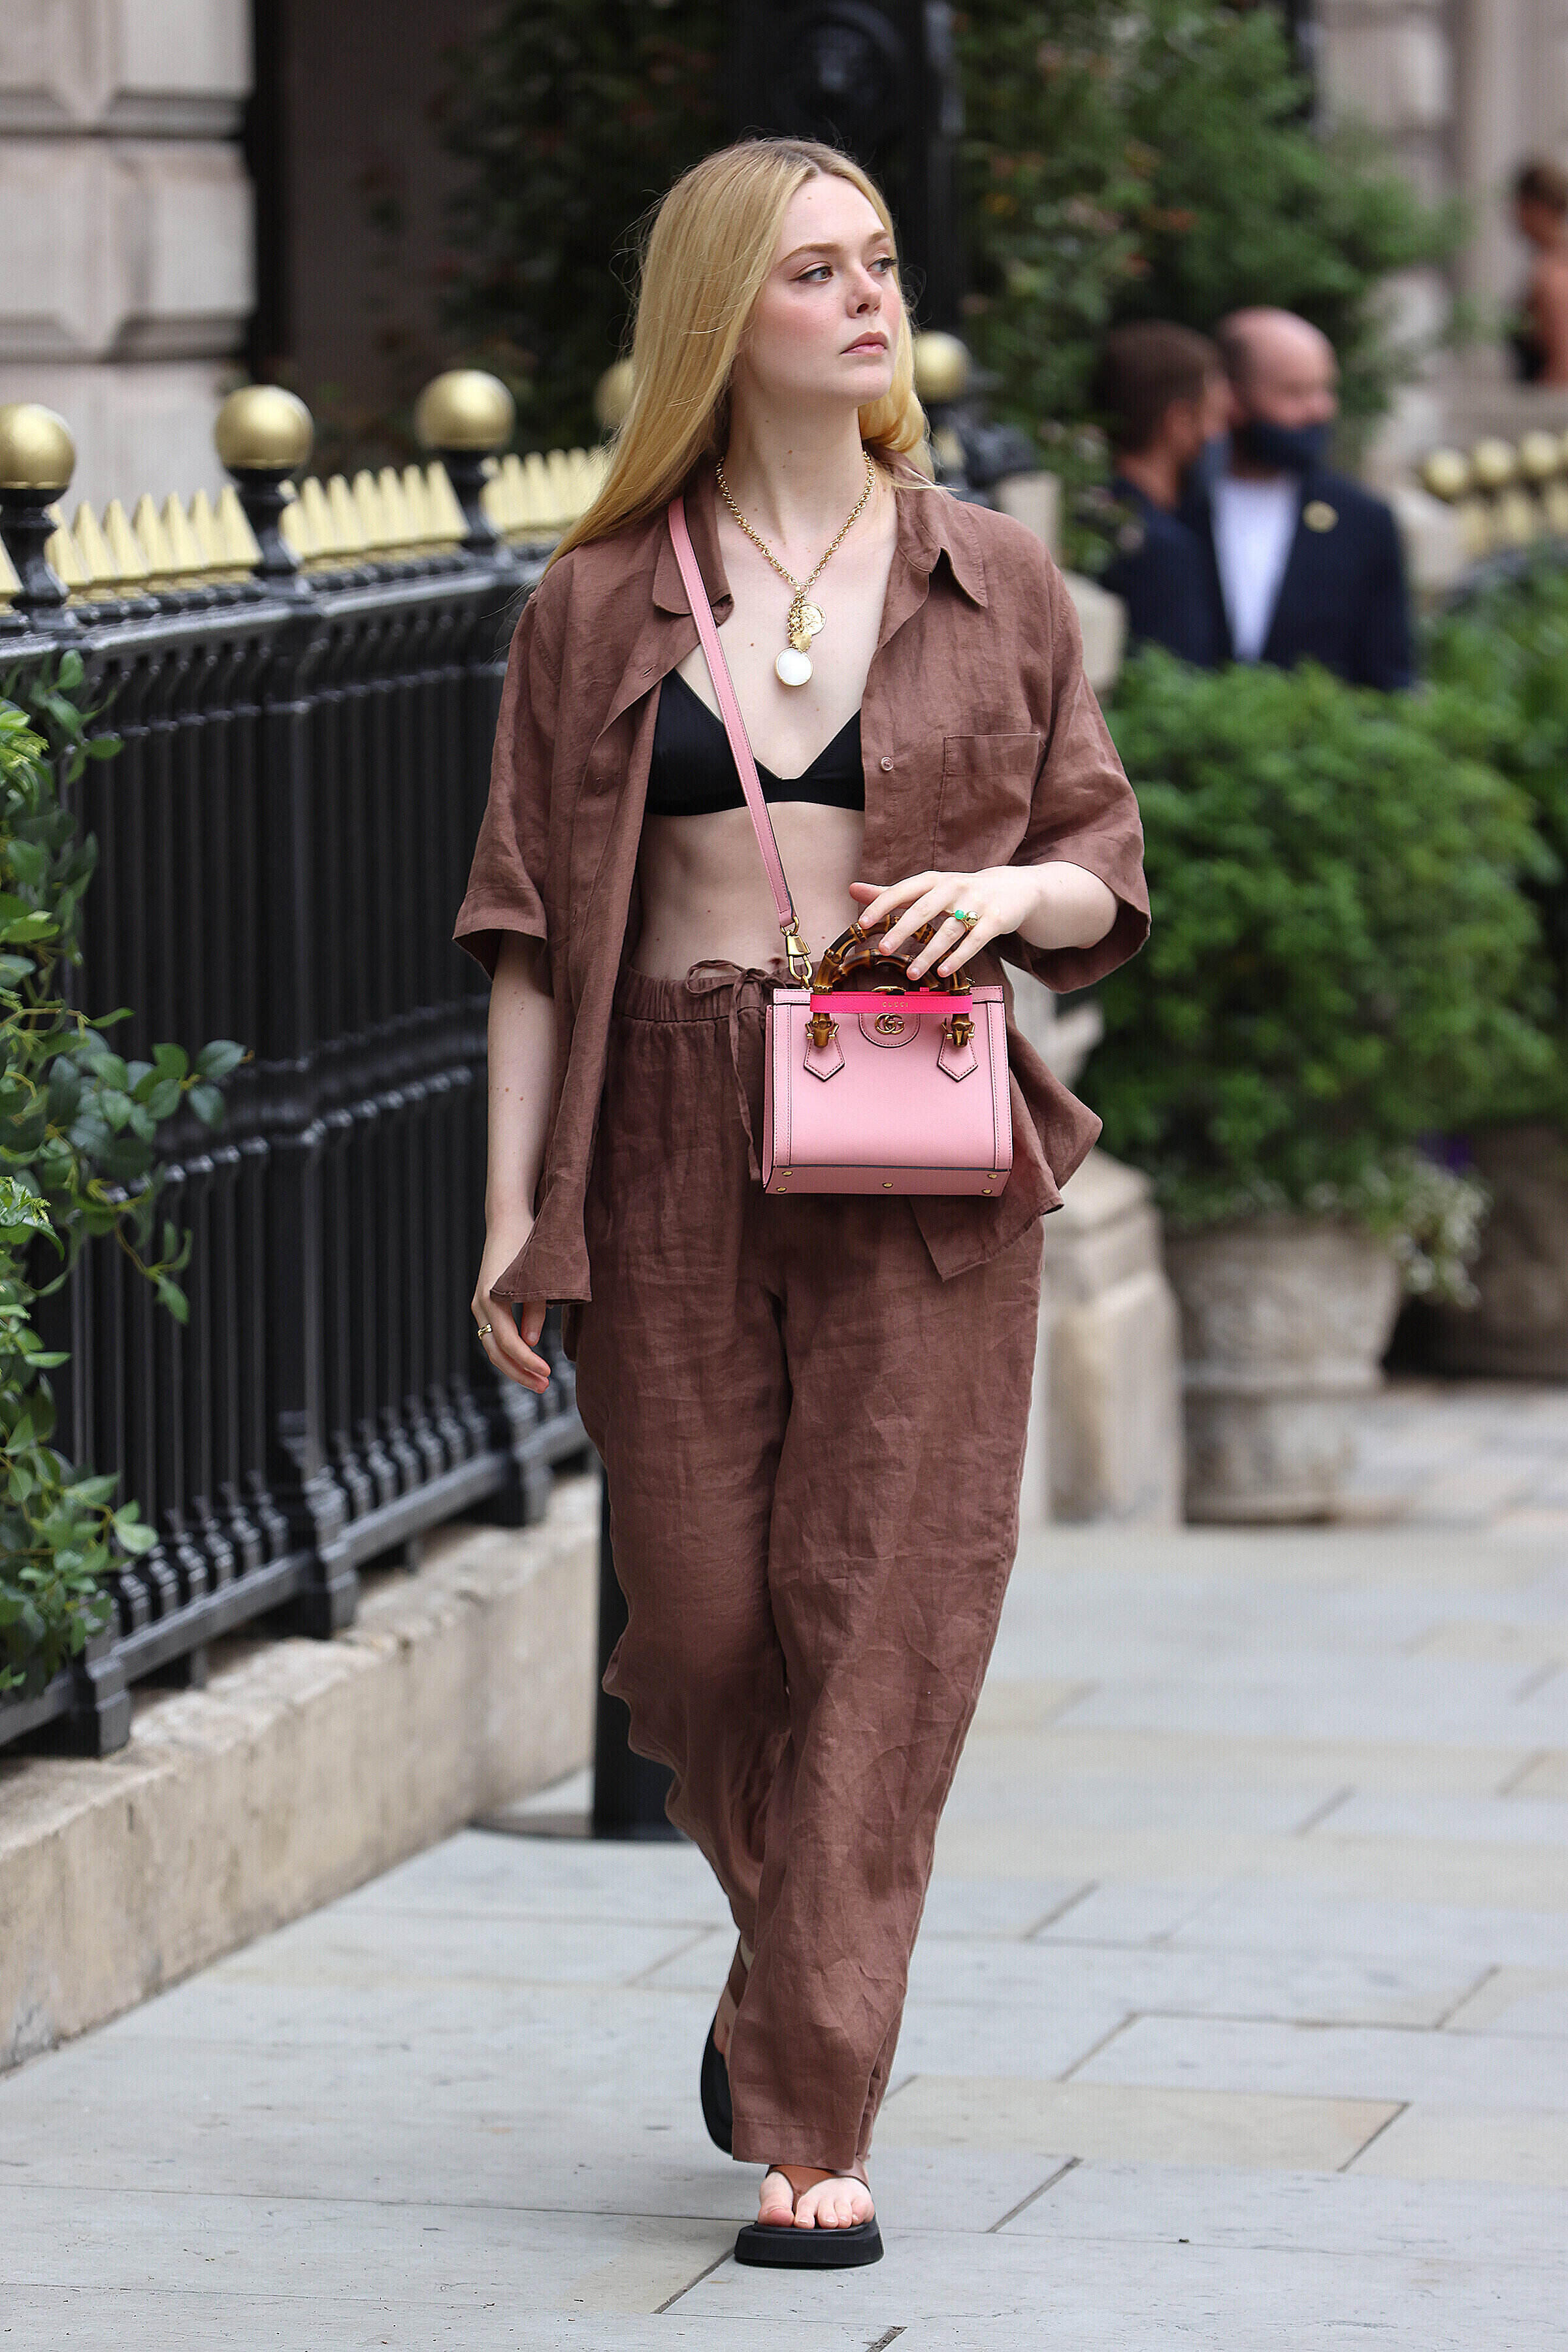 Elle Fanning carrying the Gucci 'Diana' mini tote bag